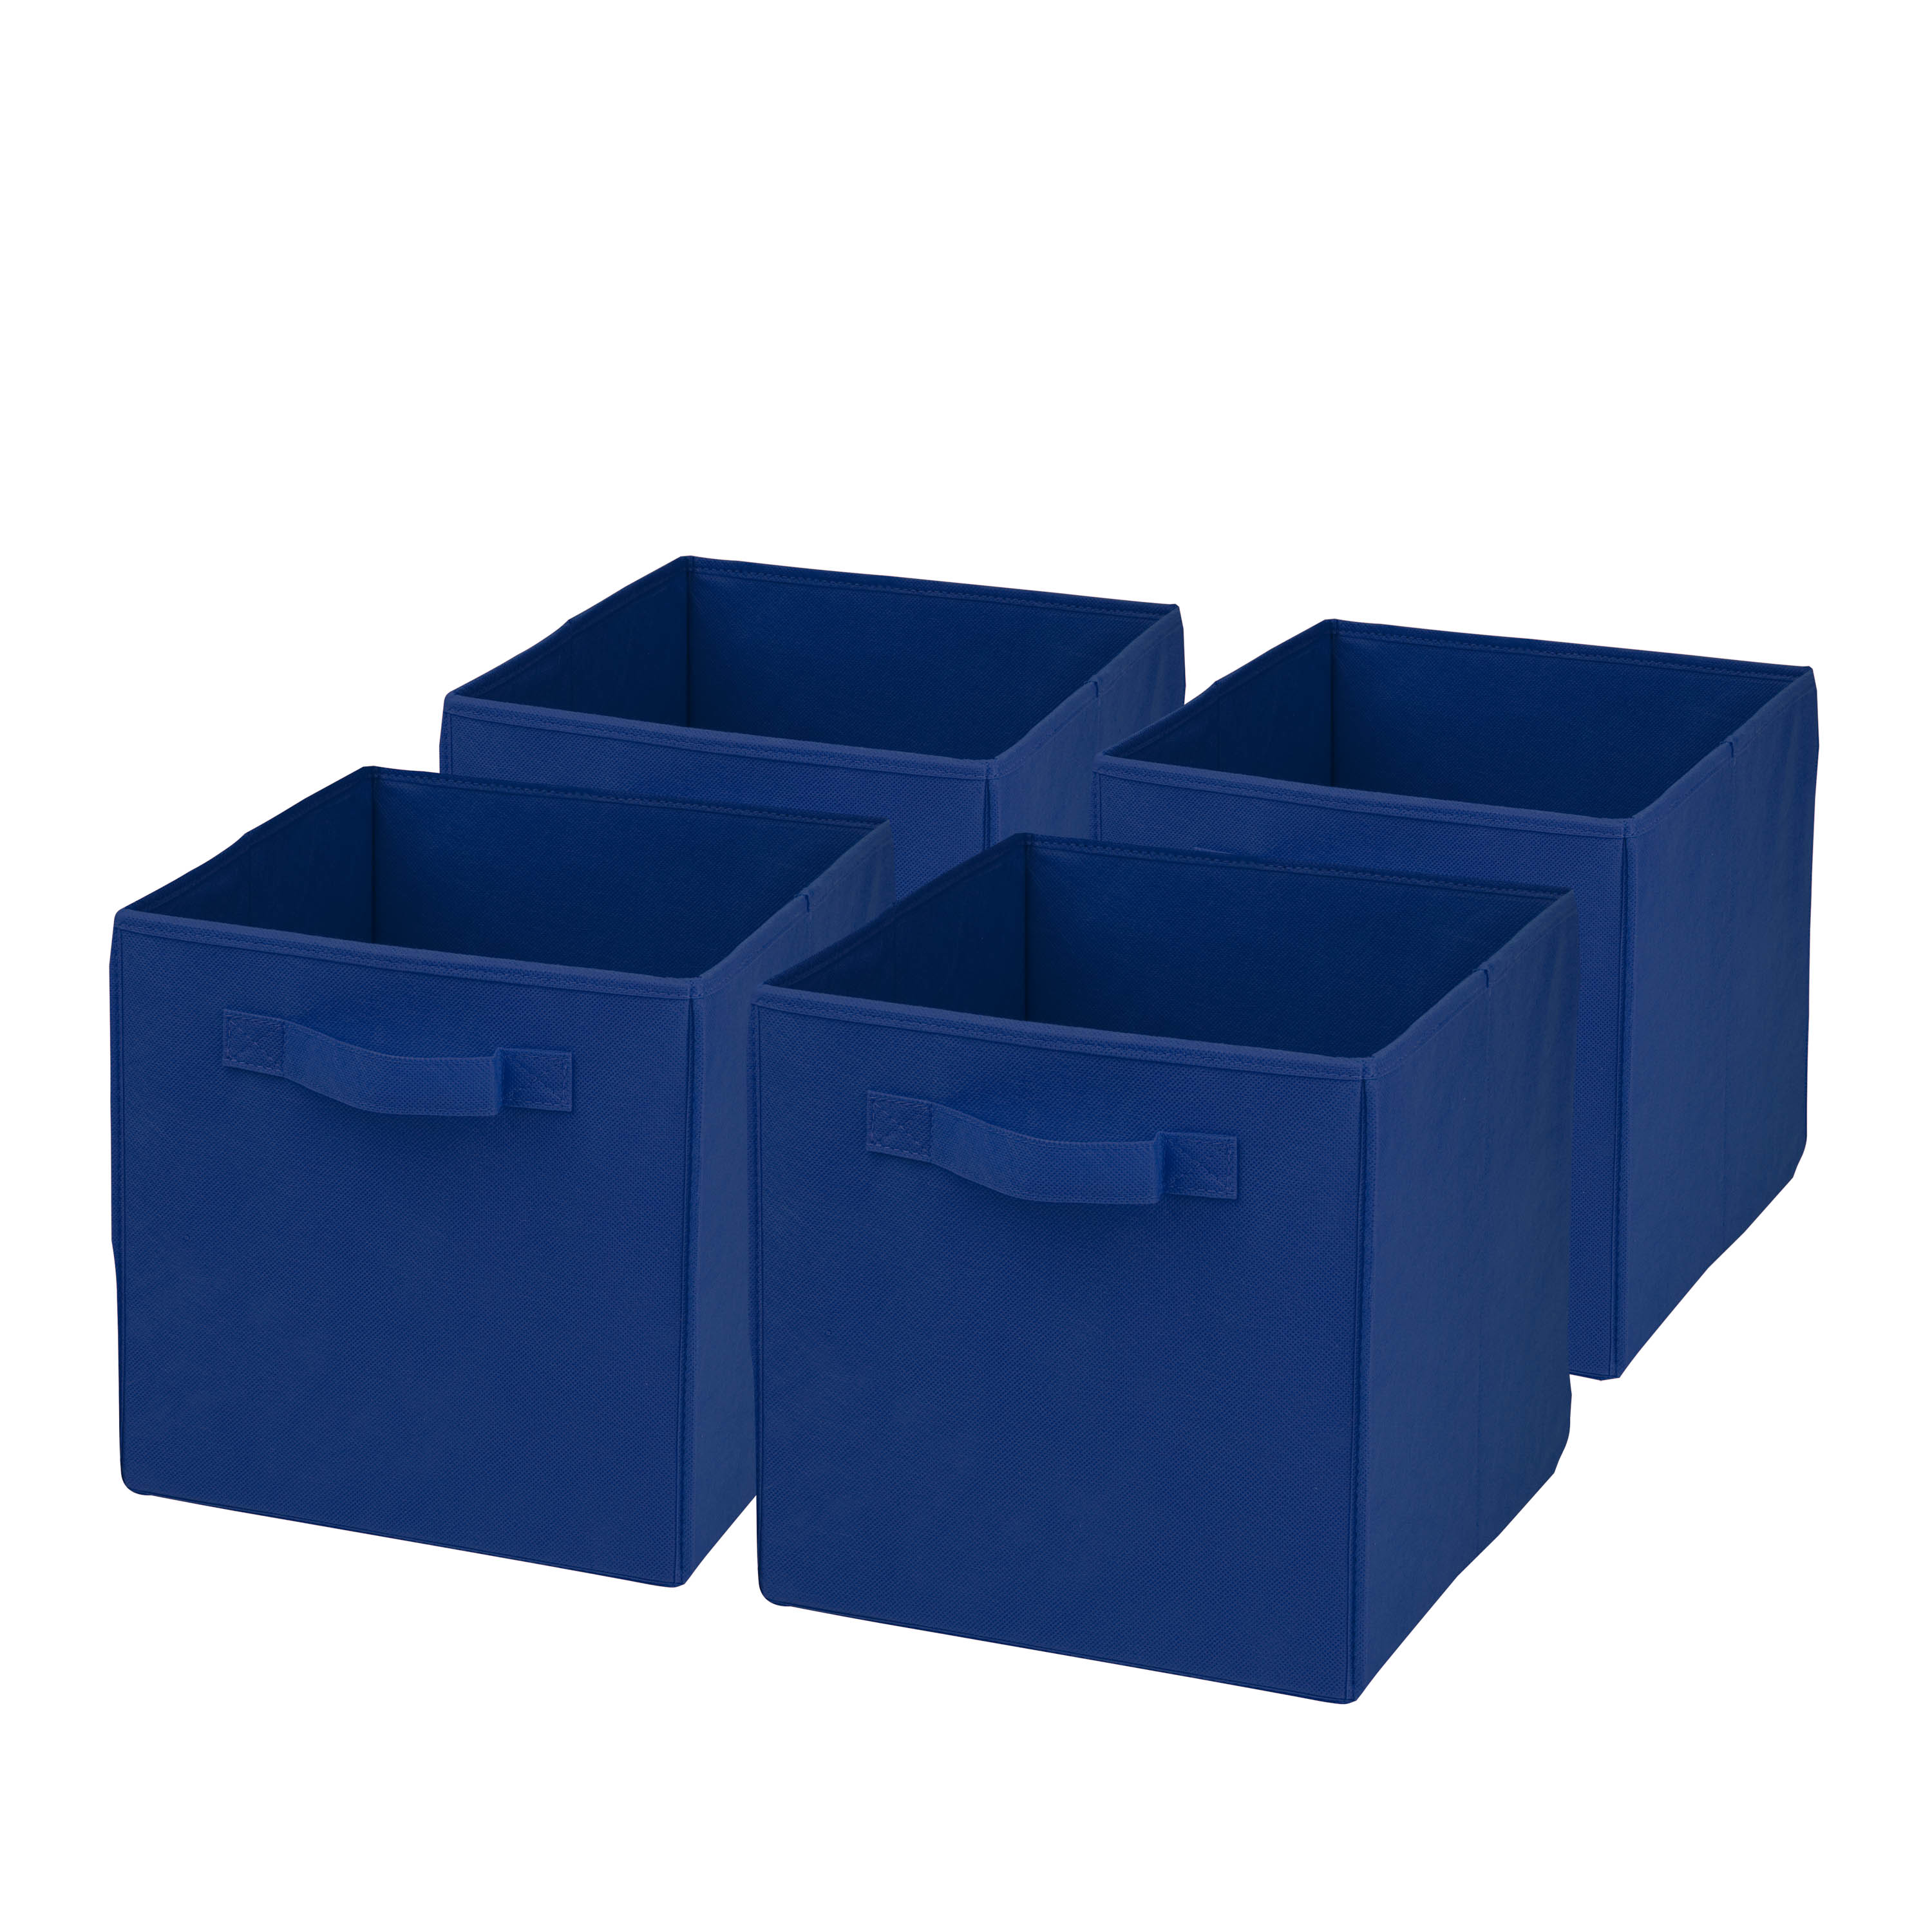 """Honey-Can-Do Non-Woven Foldable Cubes, 11 7/16""""H x 10 5/8""""W x 10 5/8""""D, Blue, Pack Of 4"""